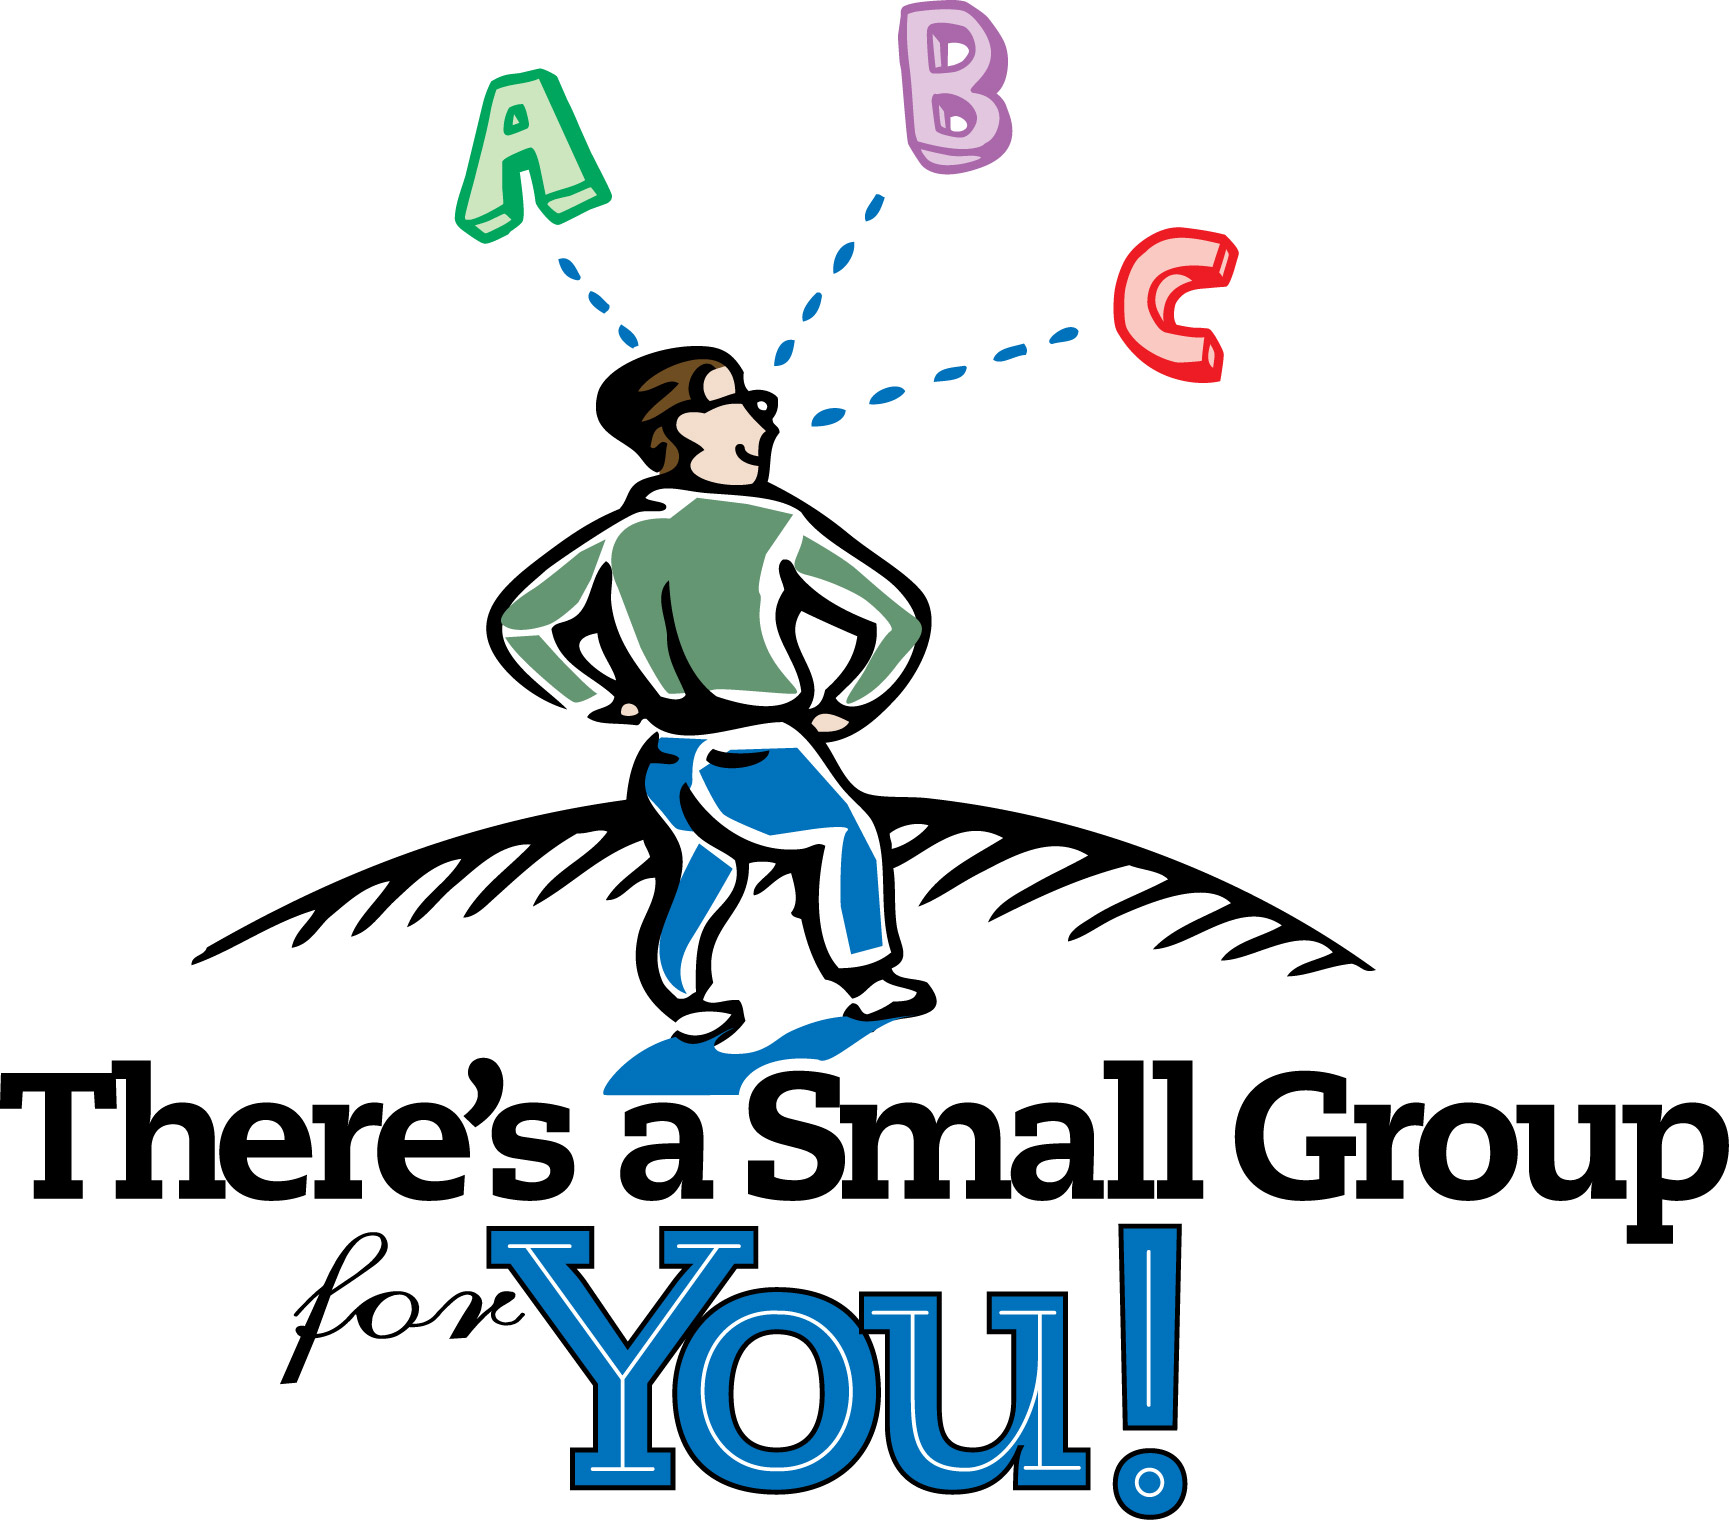 Small Group Clipart-Small Group Clipart-11